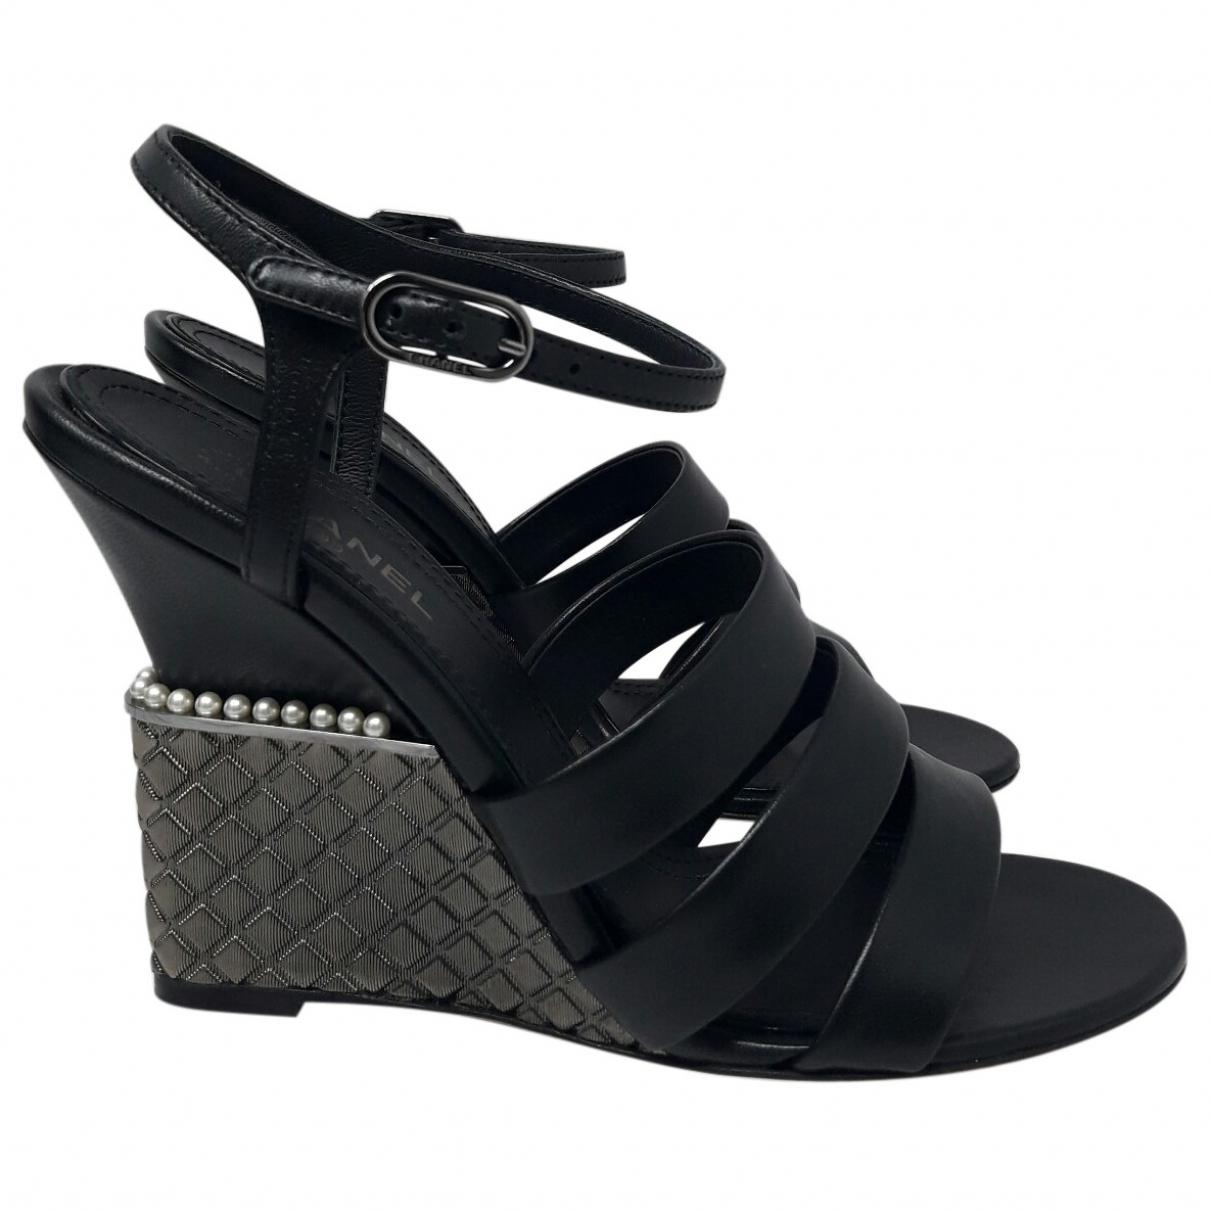 f2277c12d04 Lyst - Chanel Leather Sandals in Black